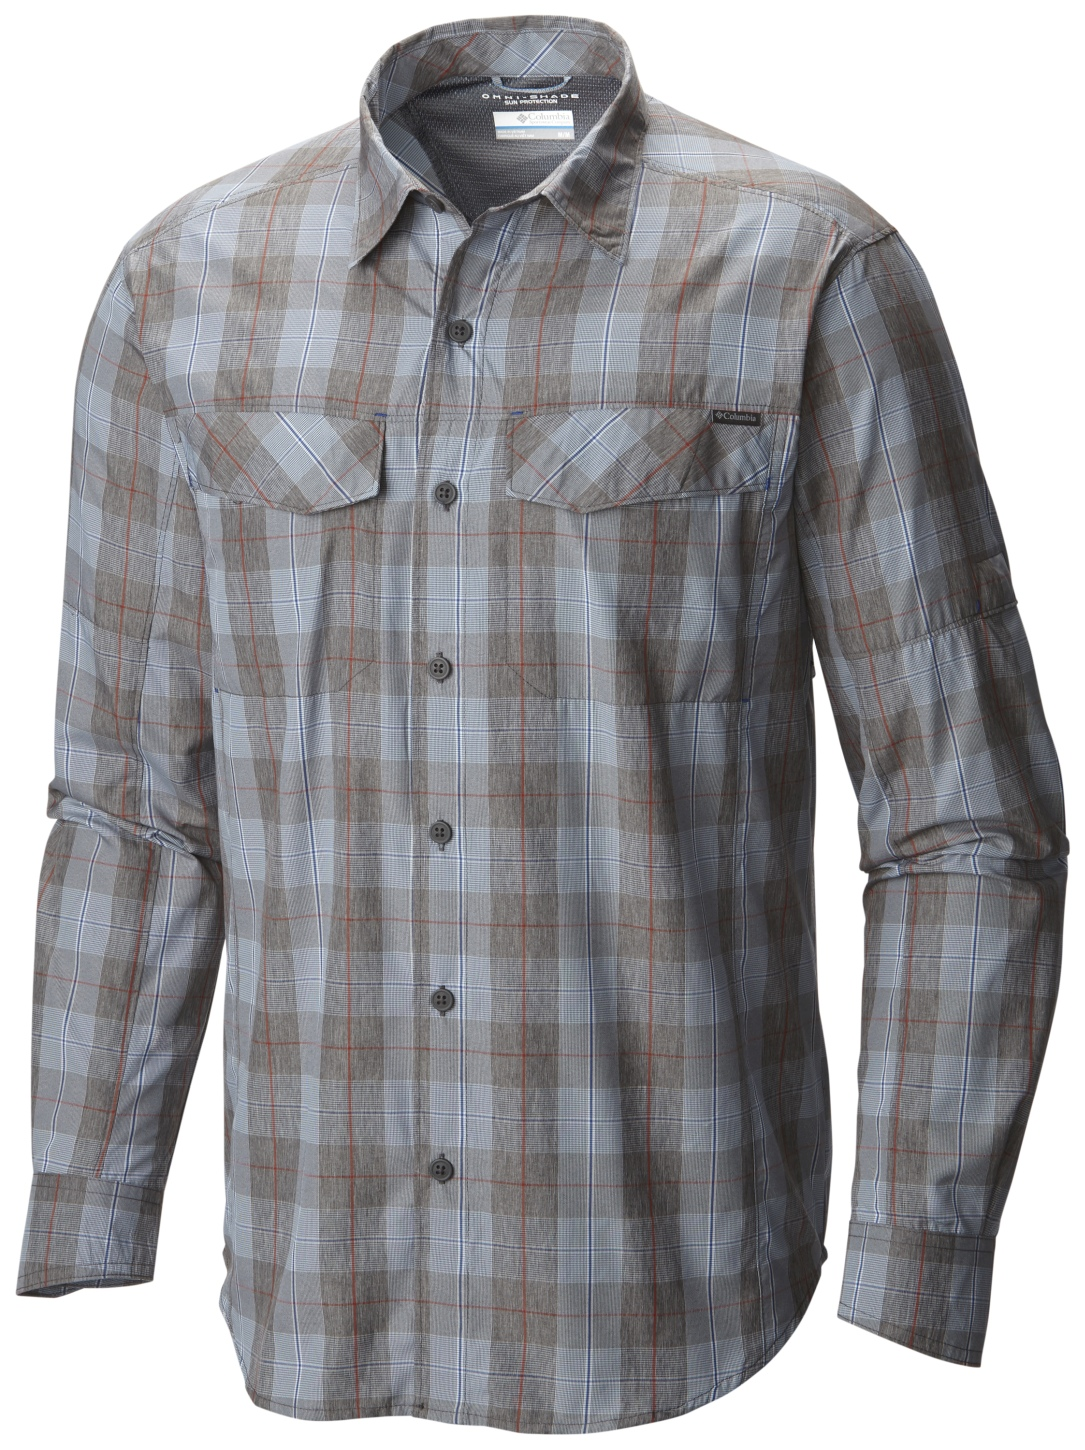 Columbia Men's Silver Ridge Plaid Long Sleeve Shirt Steel Heathered Plaid-30